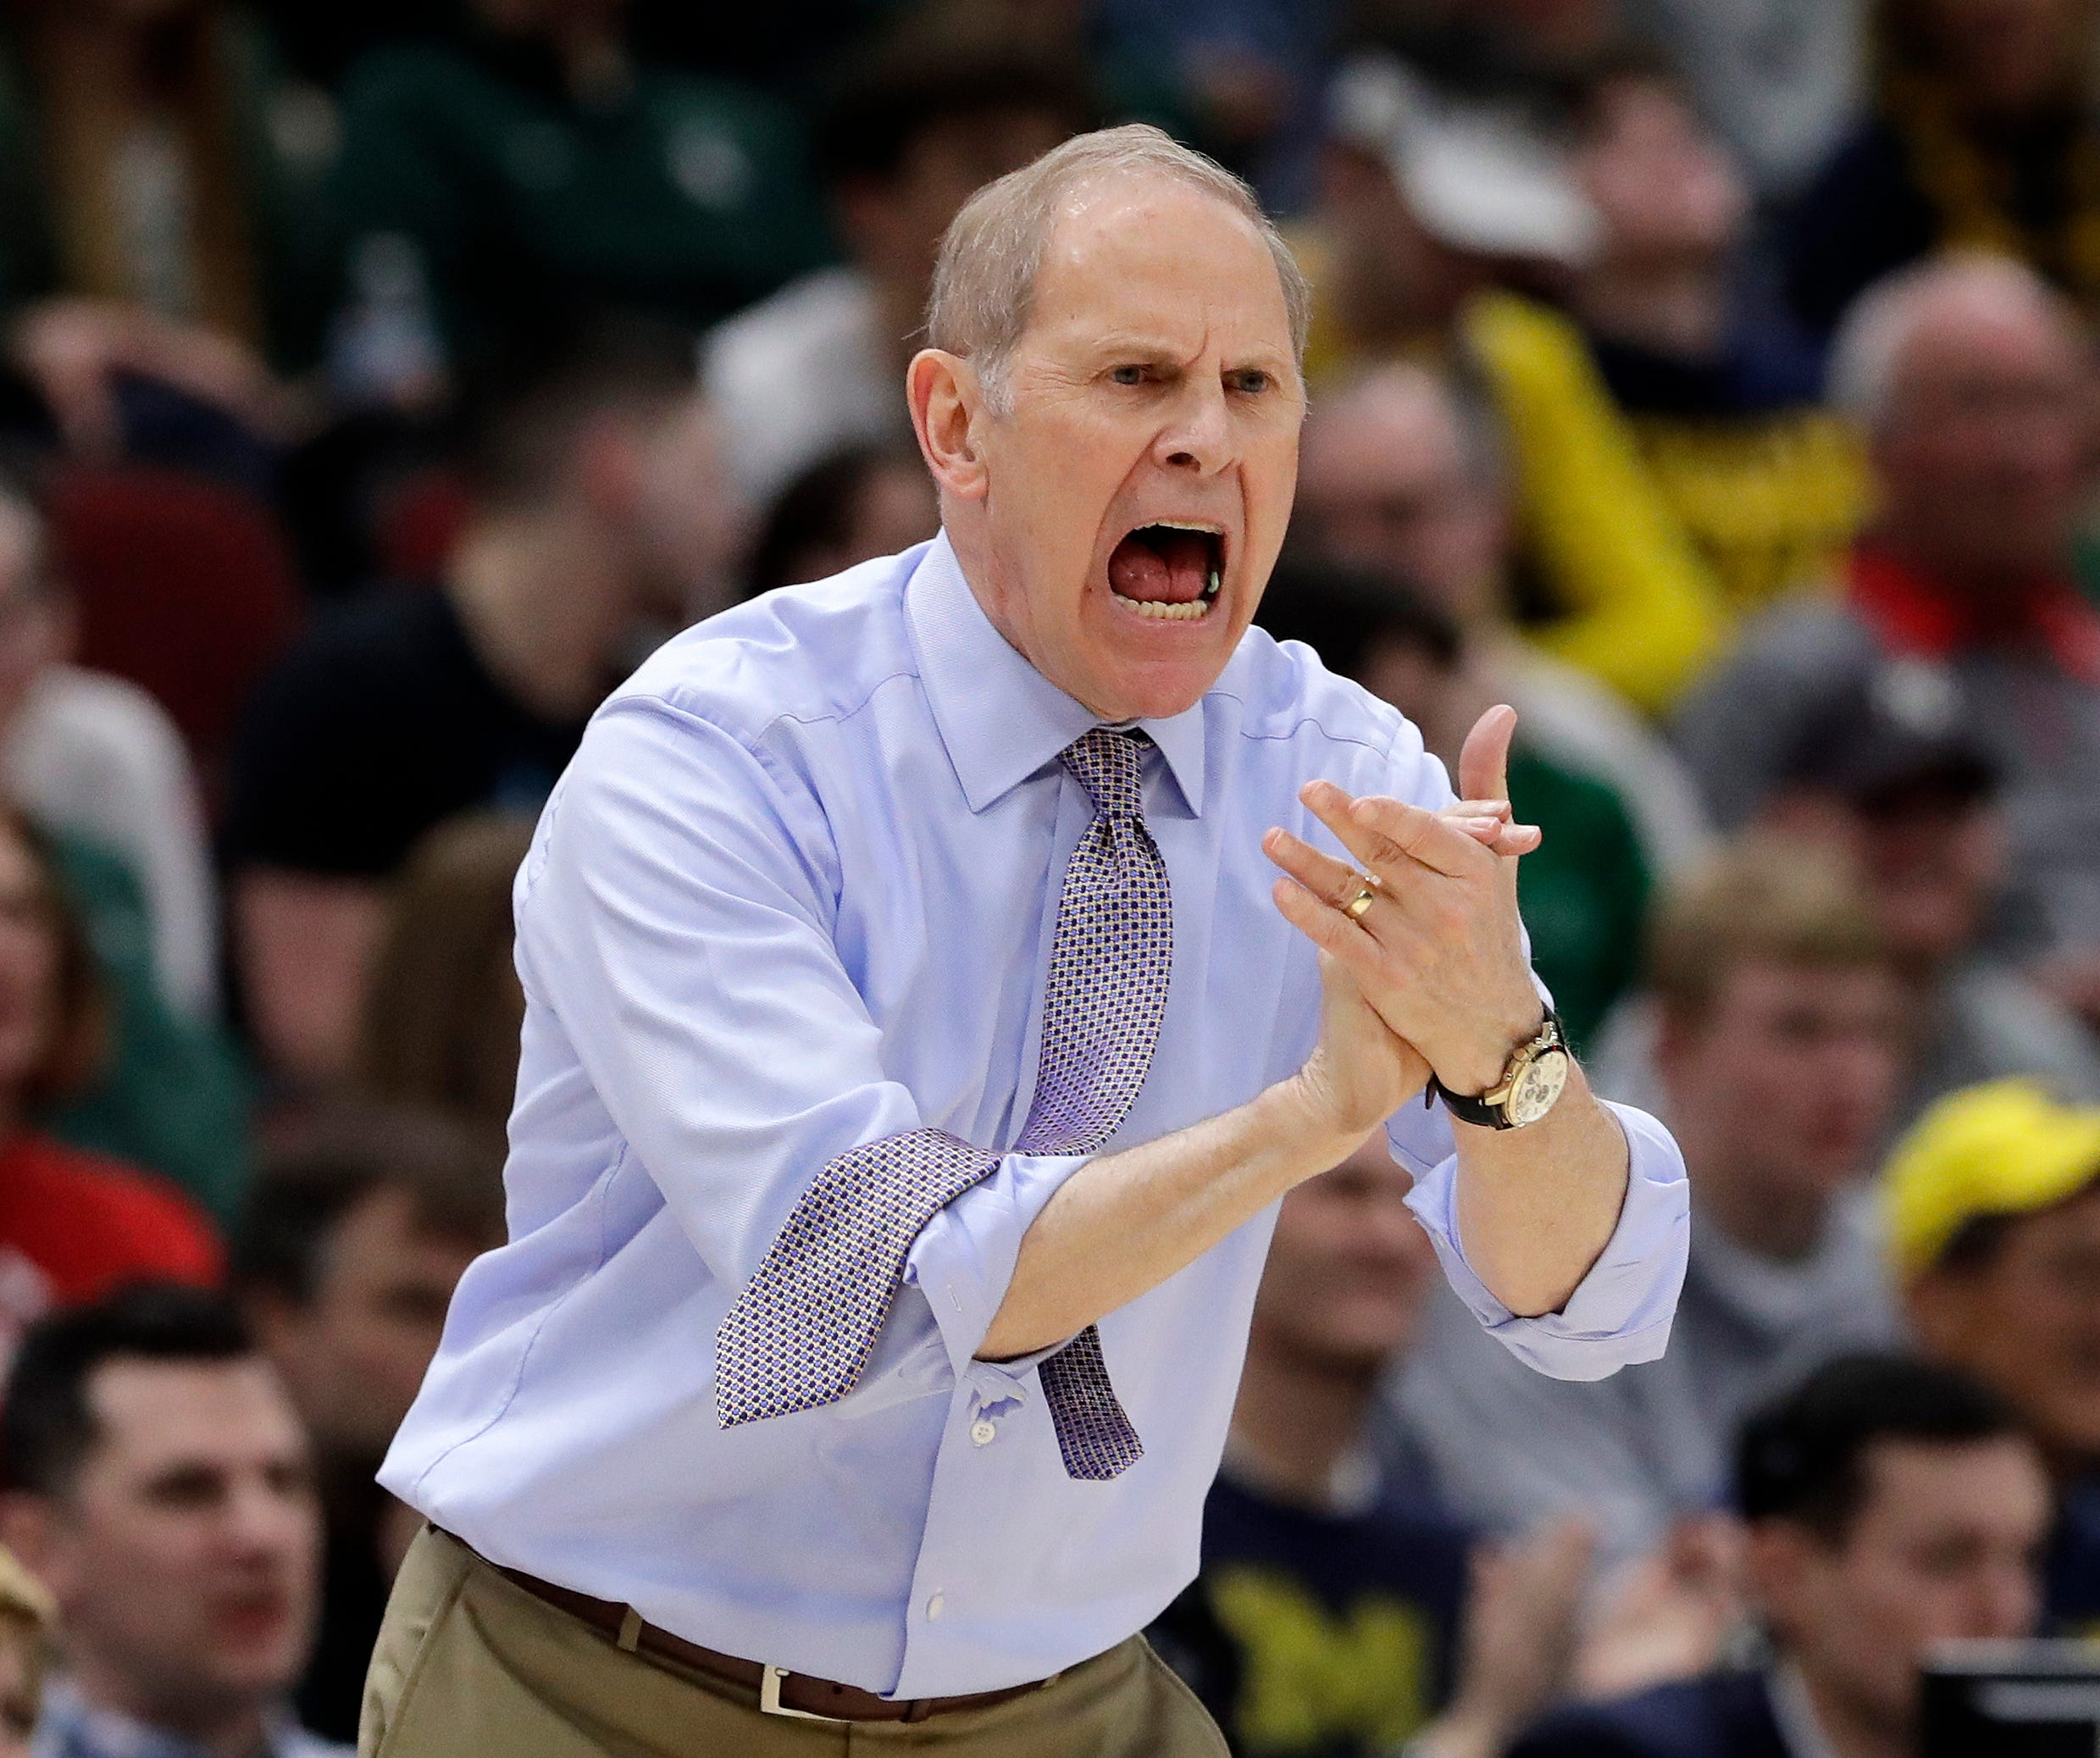 Michigan head coach John Beilein directs his team during the first half of an NCAA college basketball game against Minnesota in the semifinals of the Big Ten Conference tournament, Saturday, March 16, 2019, in Chicago.